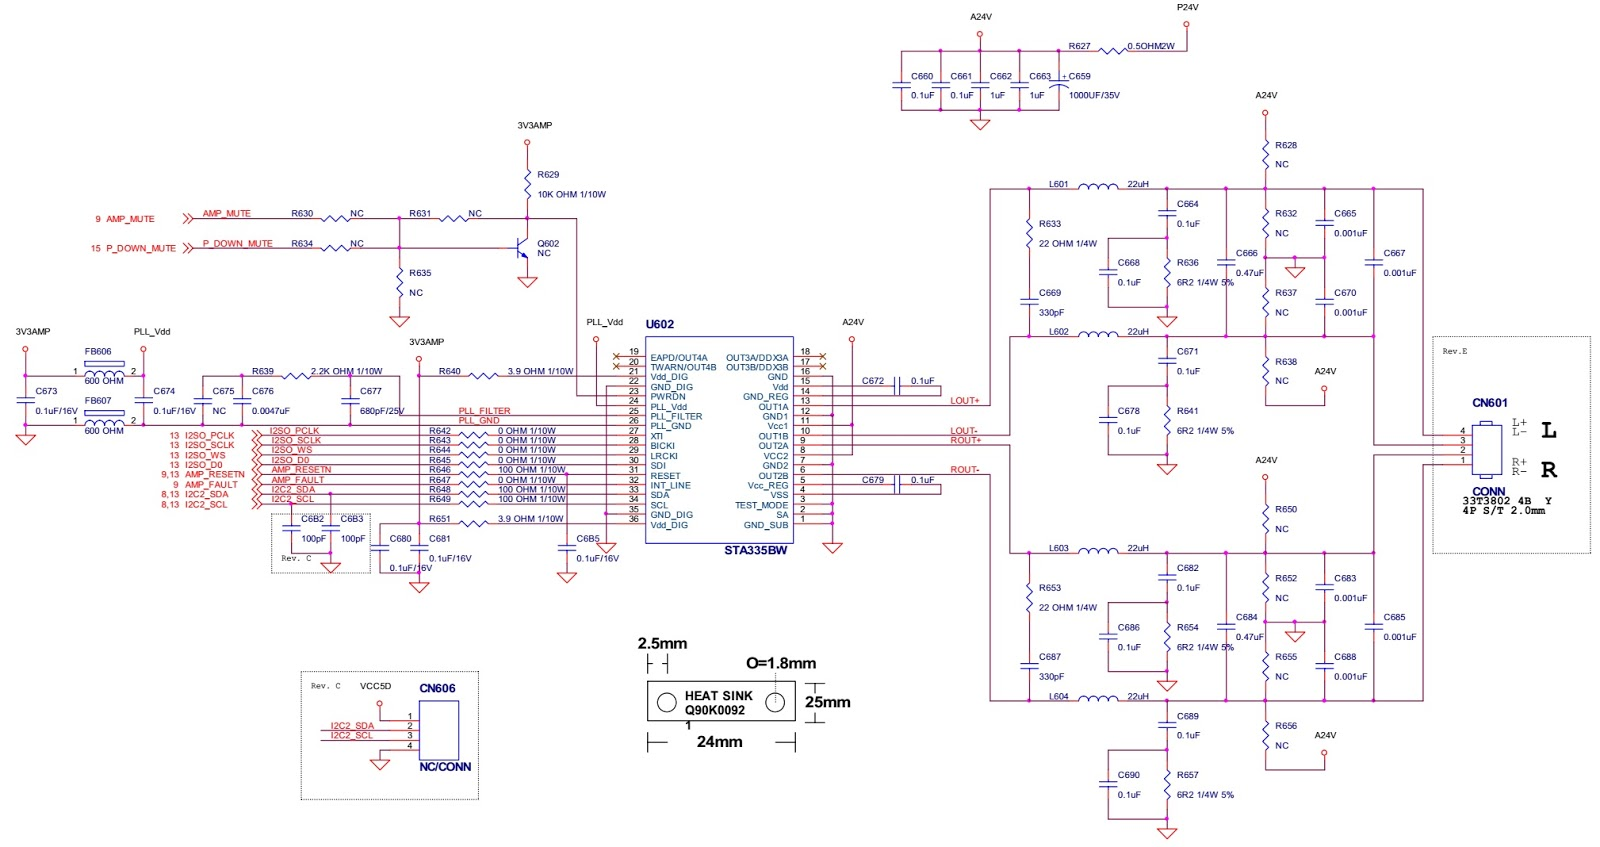 Insignia Tv Wiring Diagram Schematic Diagrams Trusted Power Cord Replacement Schematics